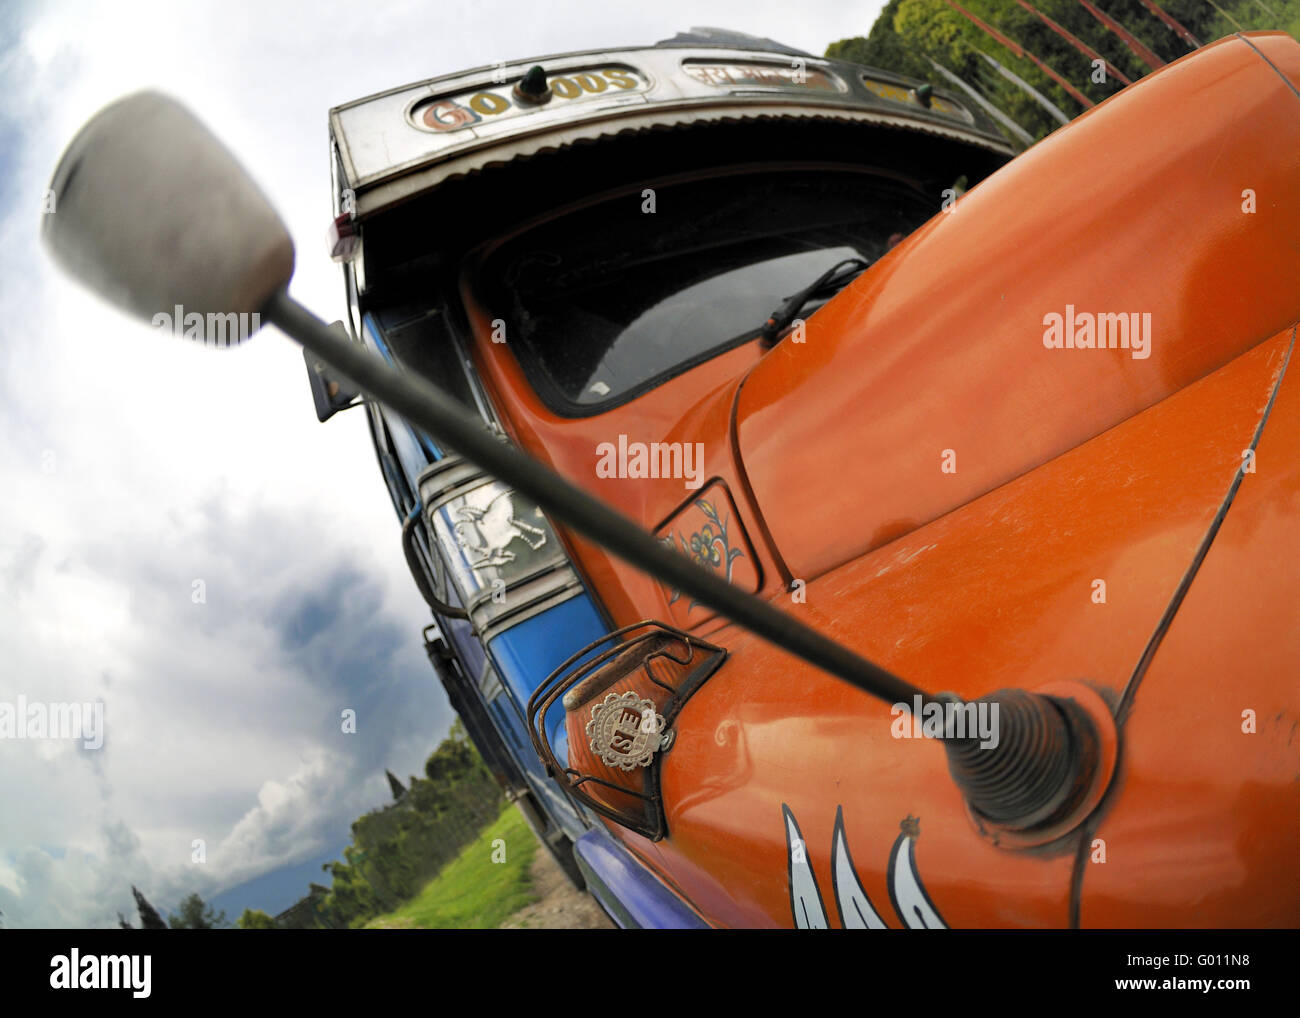 Goods Carrier - Stock Image